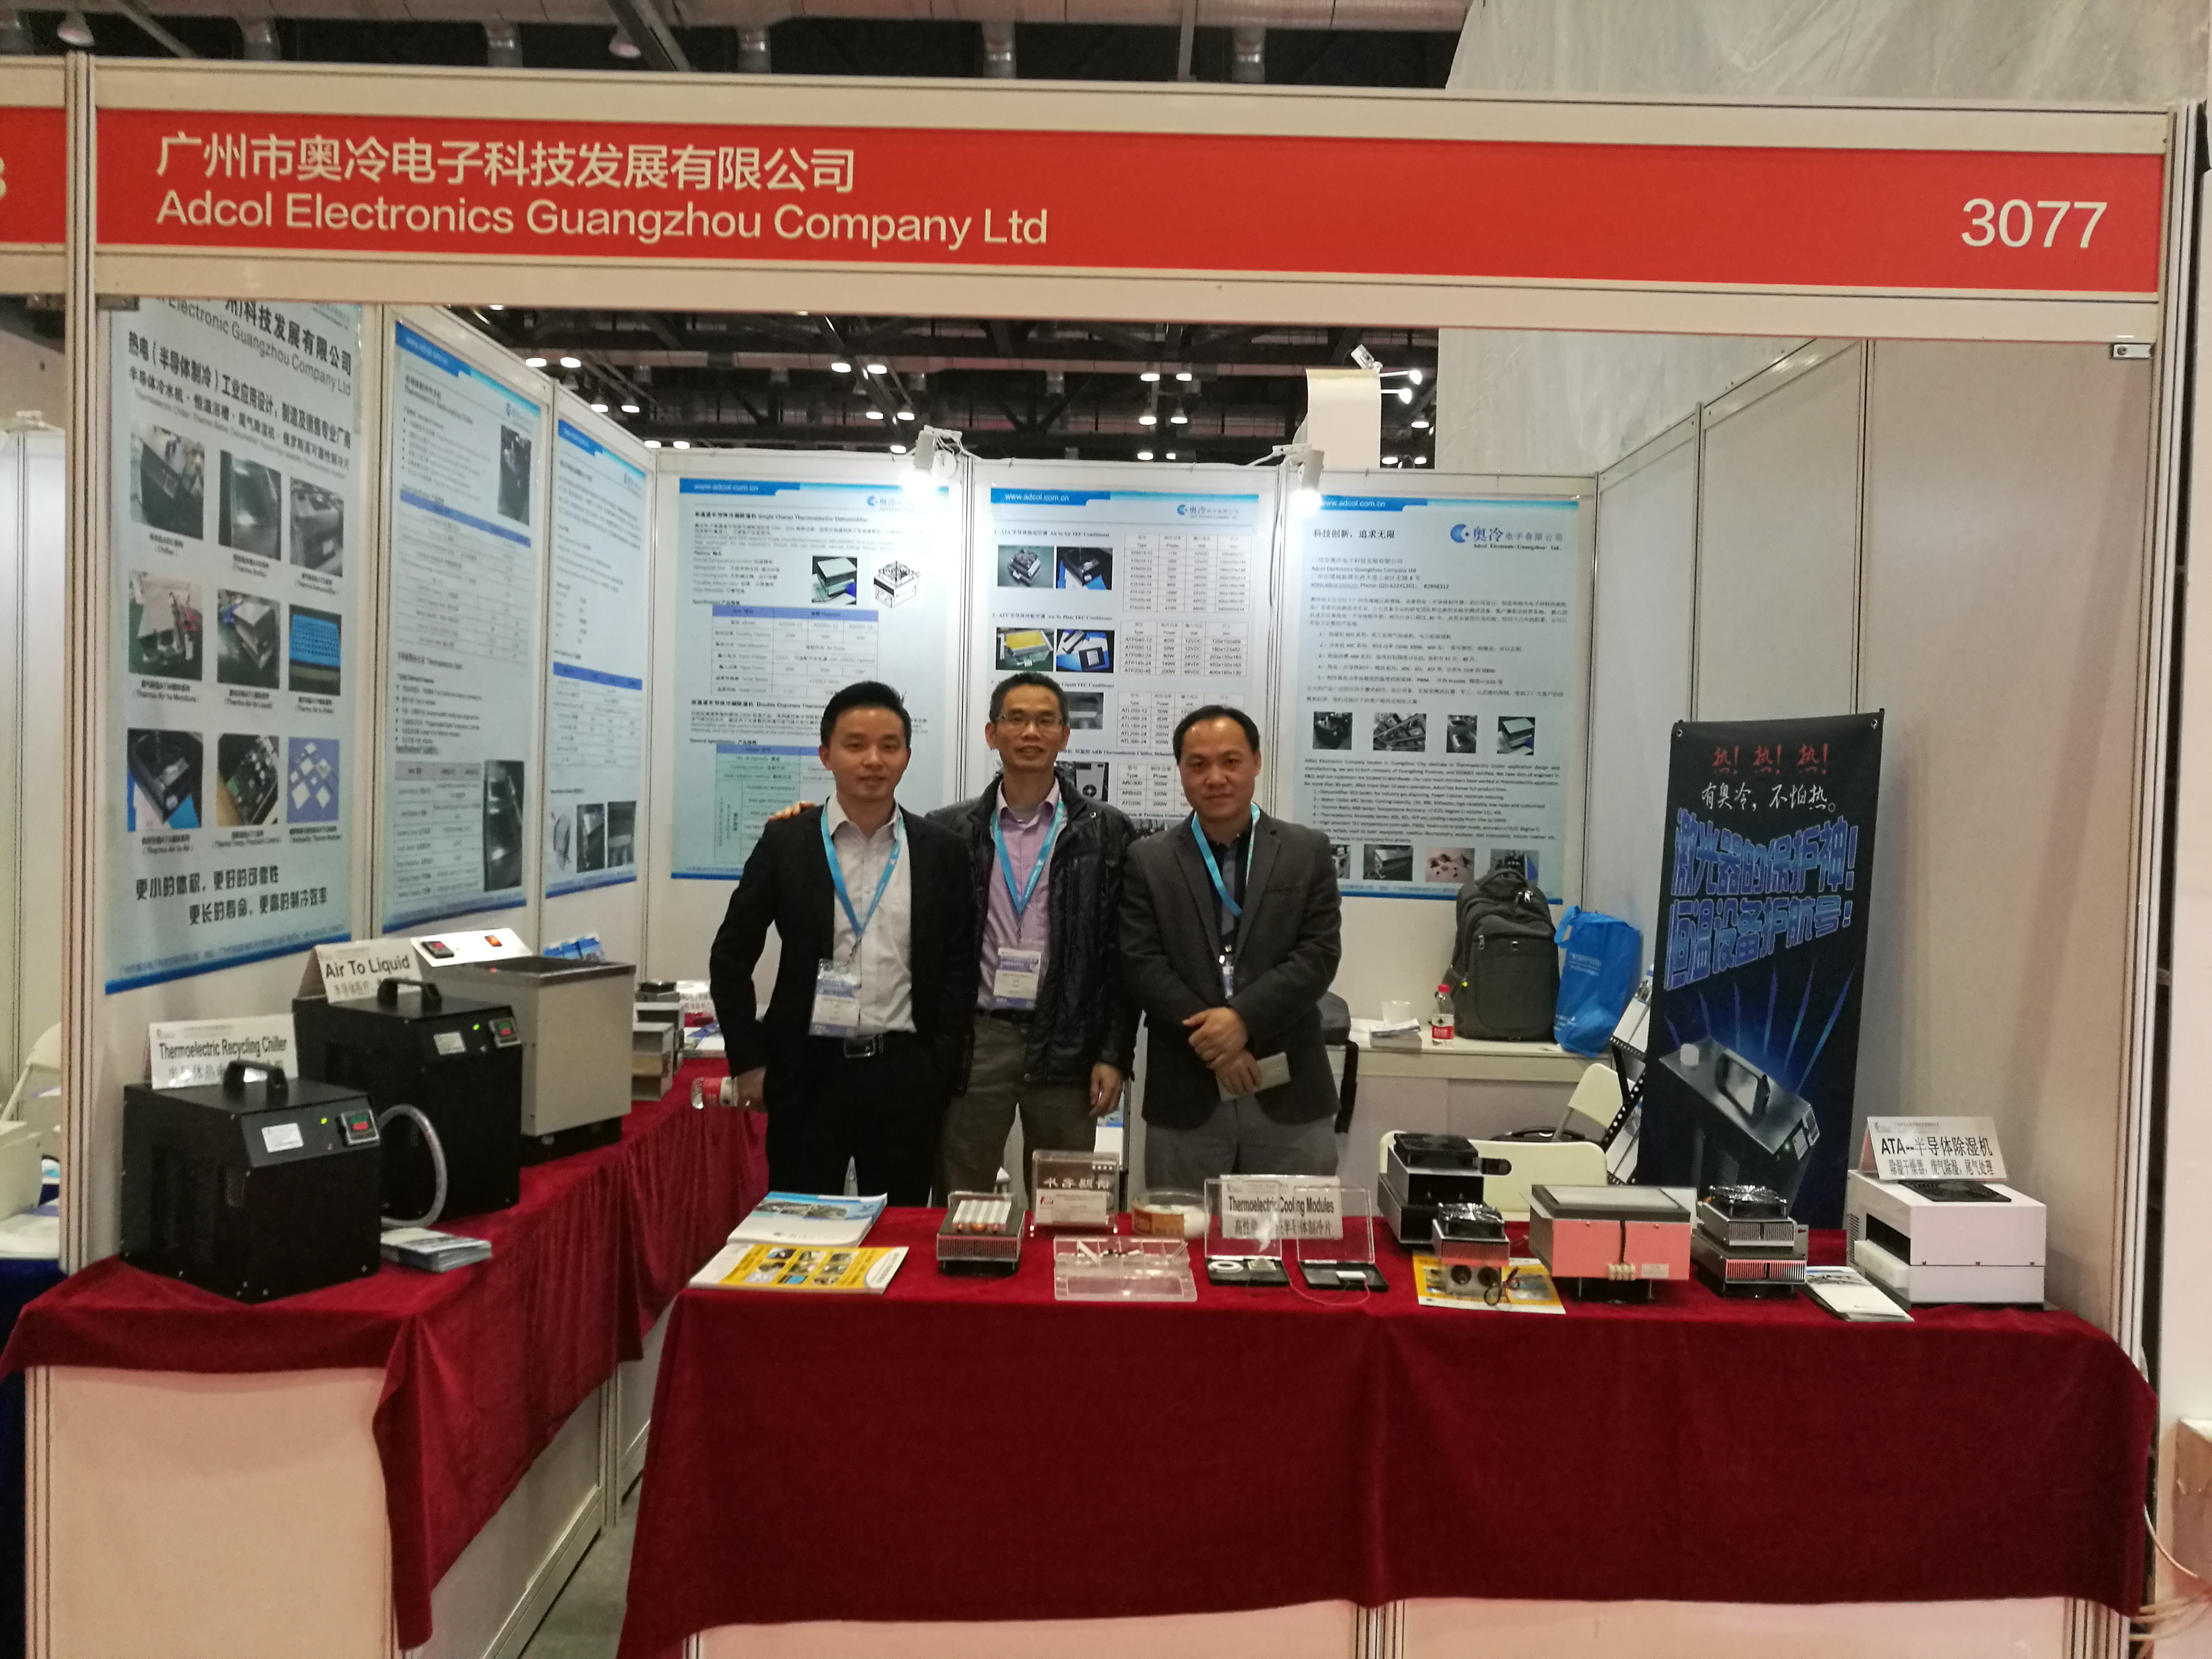 Adcol attended CISILE 2017 Beijing